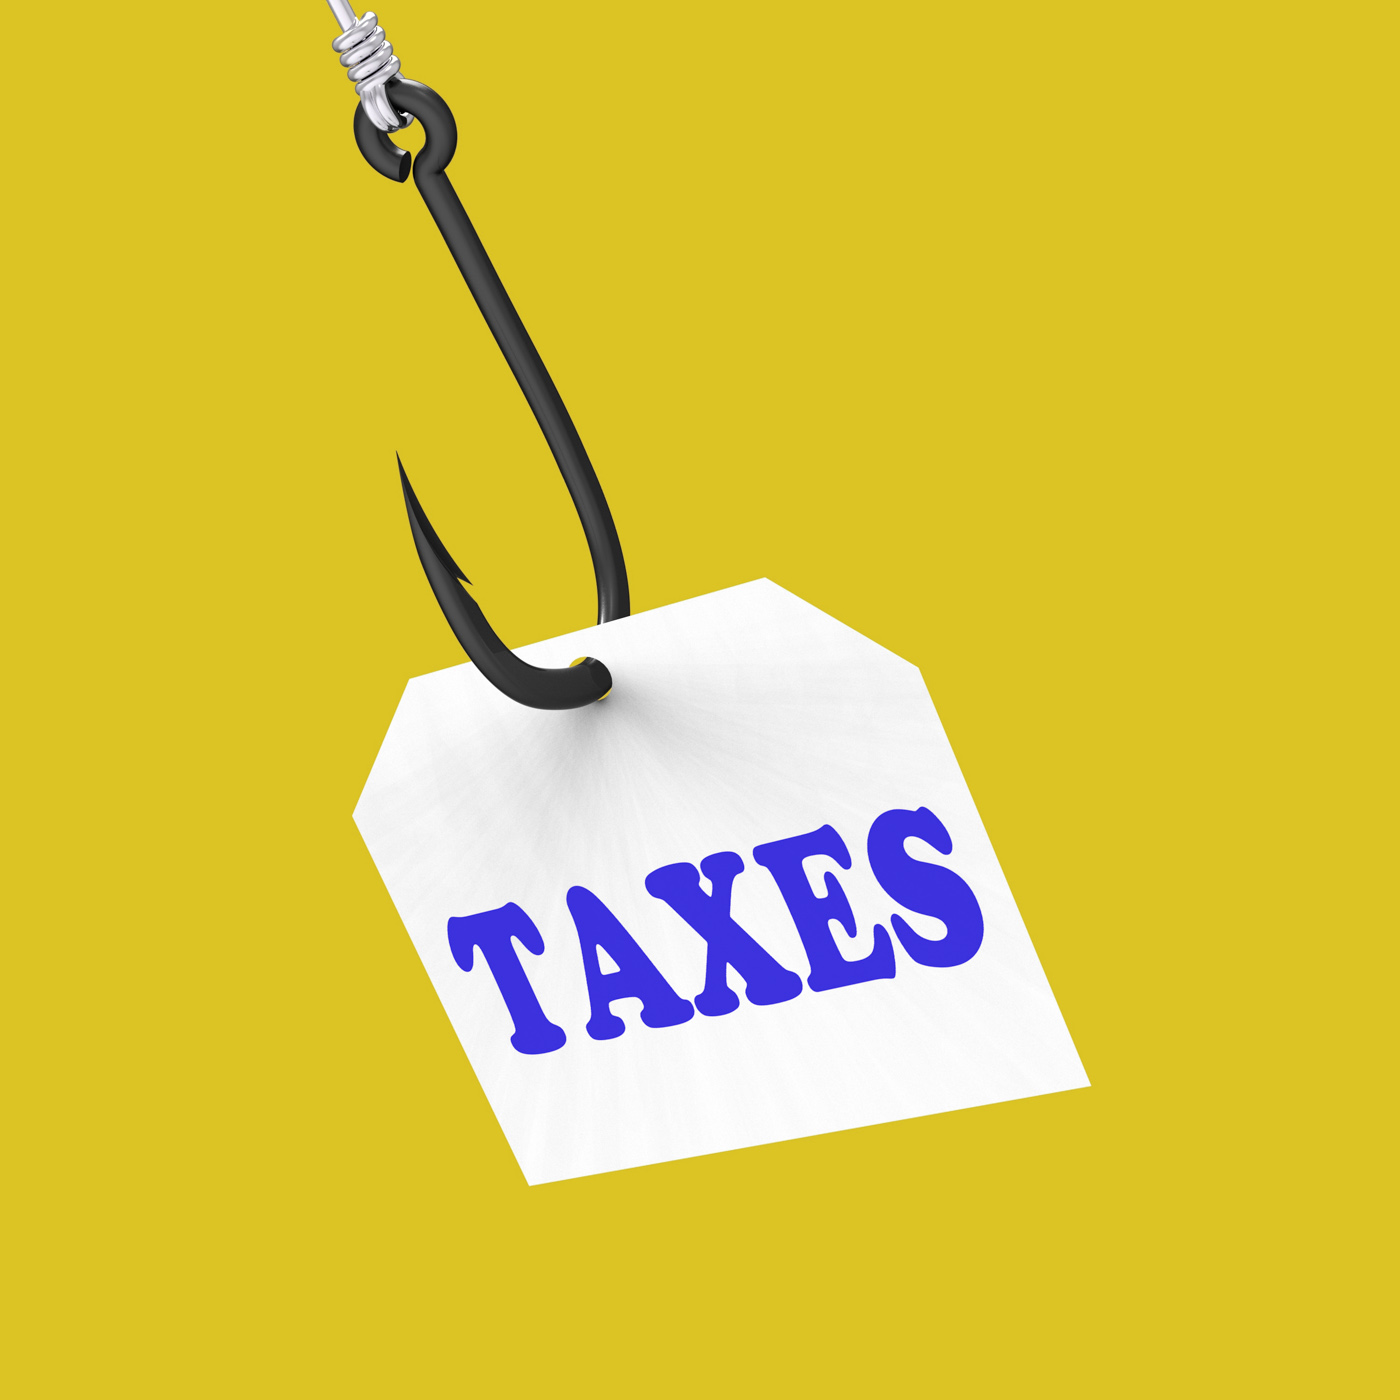 Taxes on hook means taxation or legal fees photo